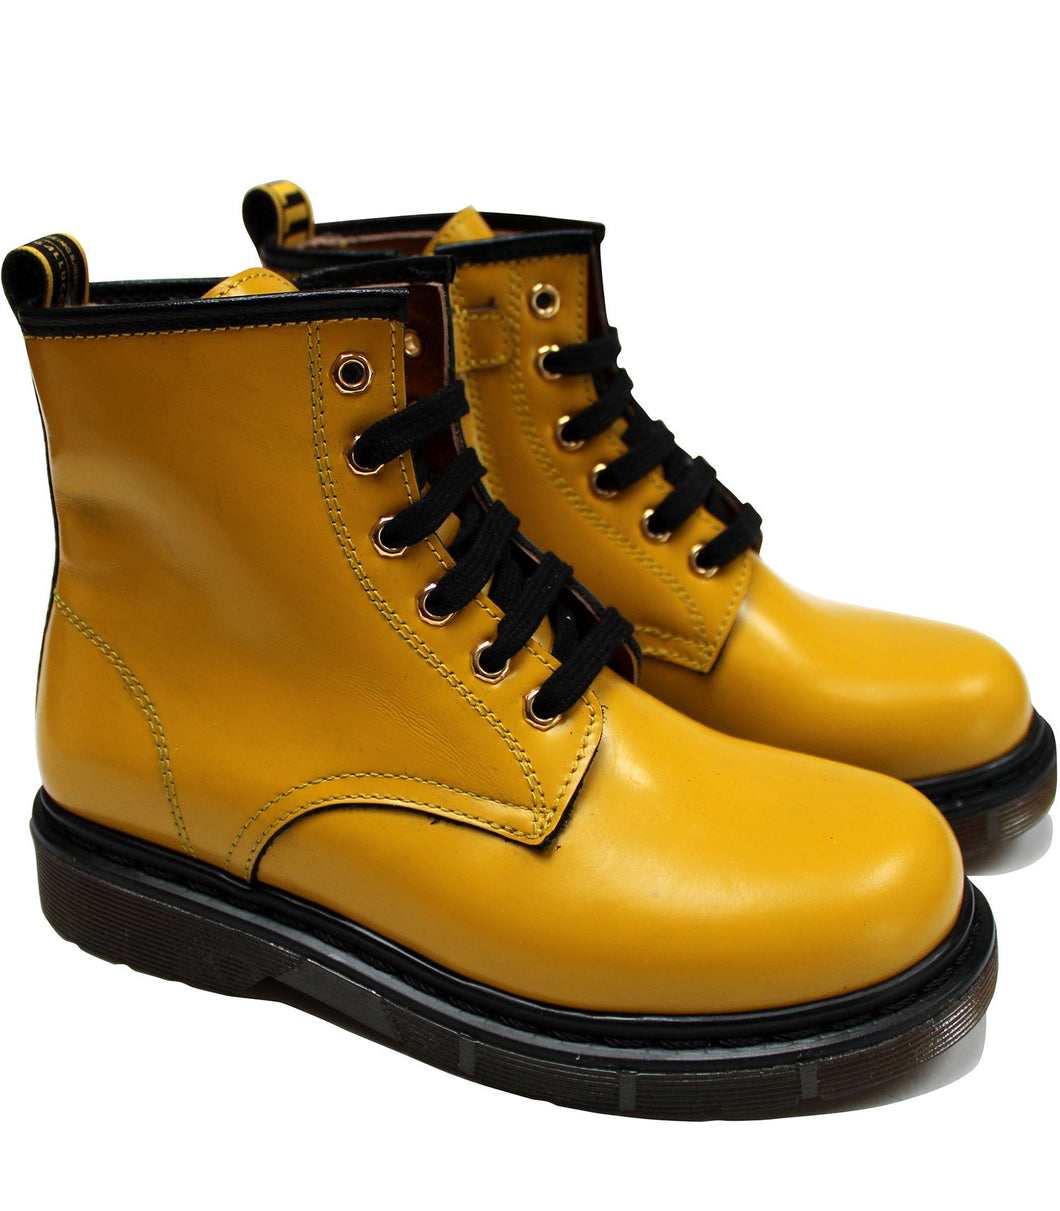 Lace up boots in deep yellow leather